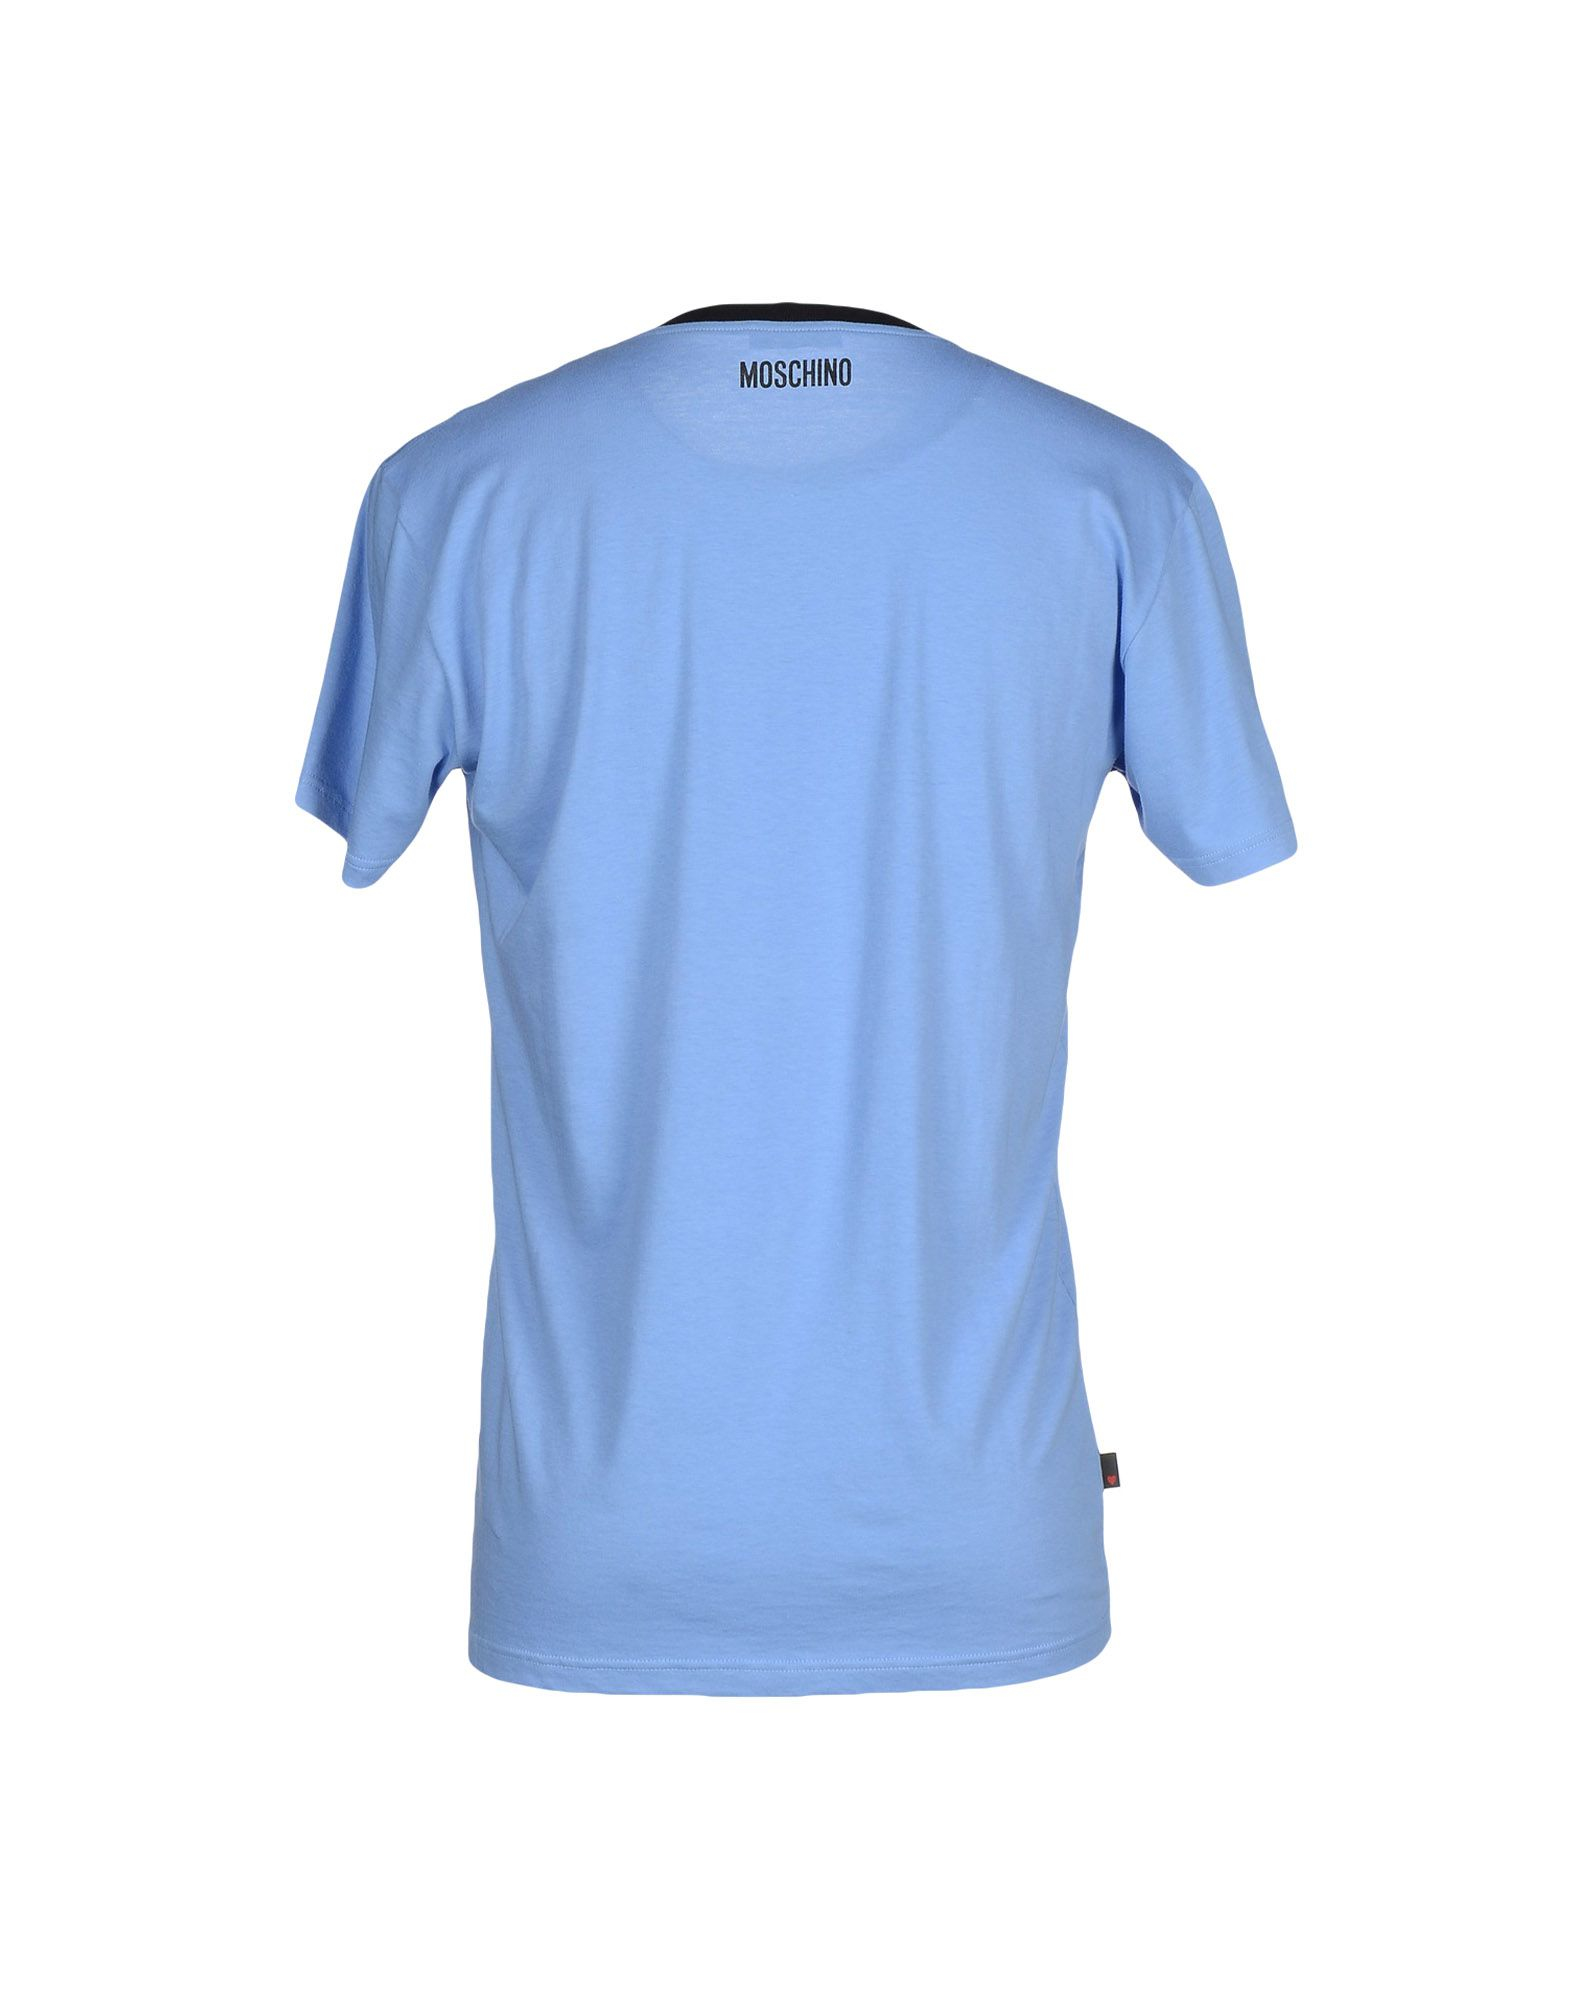 moschino t shirt in blue for men lyst. Black Bedroom Furniture Sets. Home Design Ideas